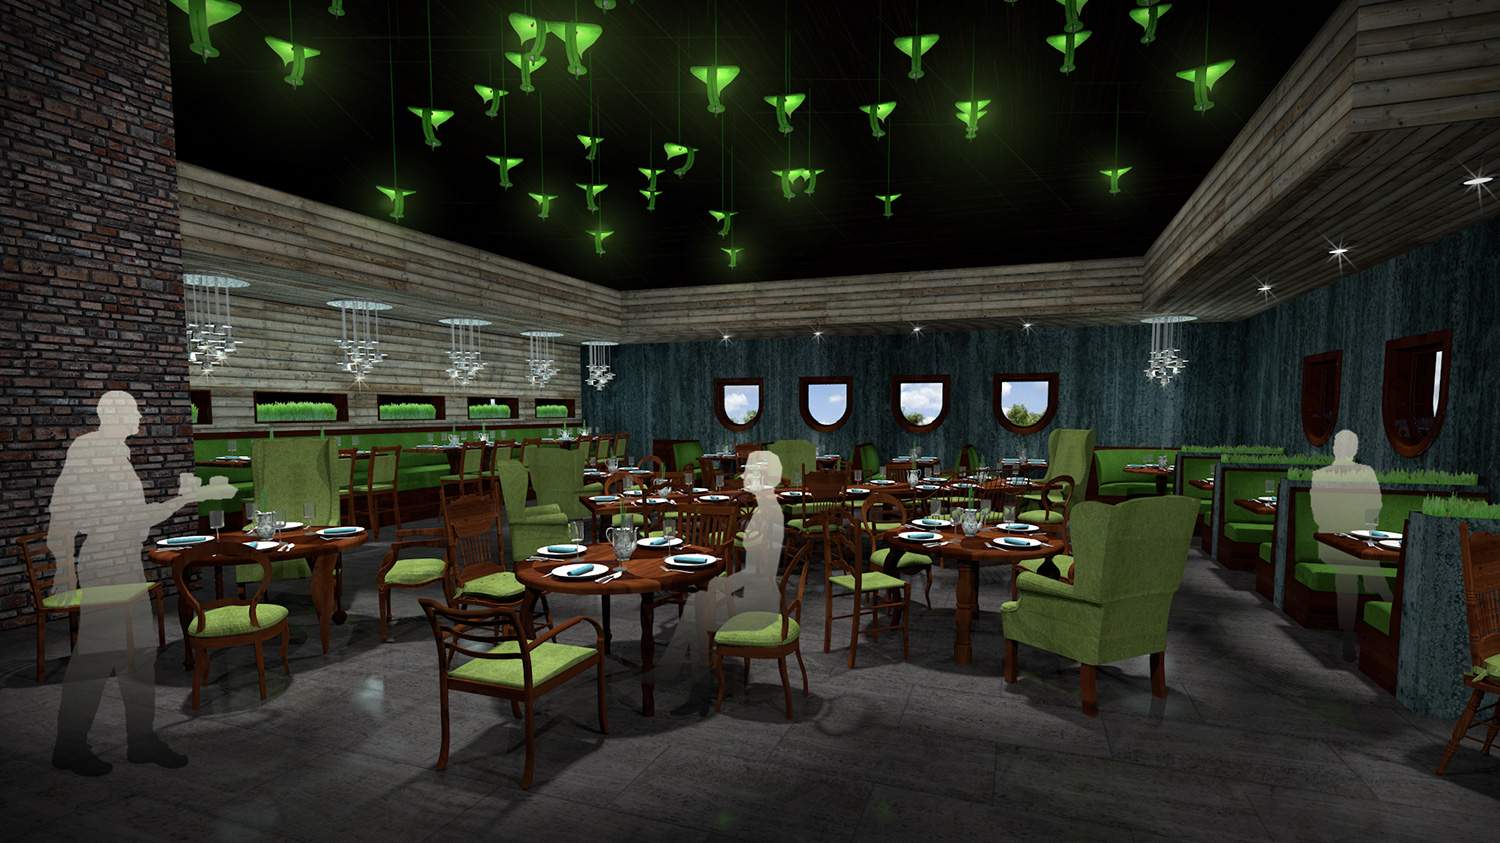 andy-broomell-mirabili-themed-restaurant-design-vectorworks-photoshop-3d-model-rendering-10.png